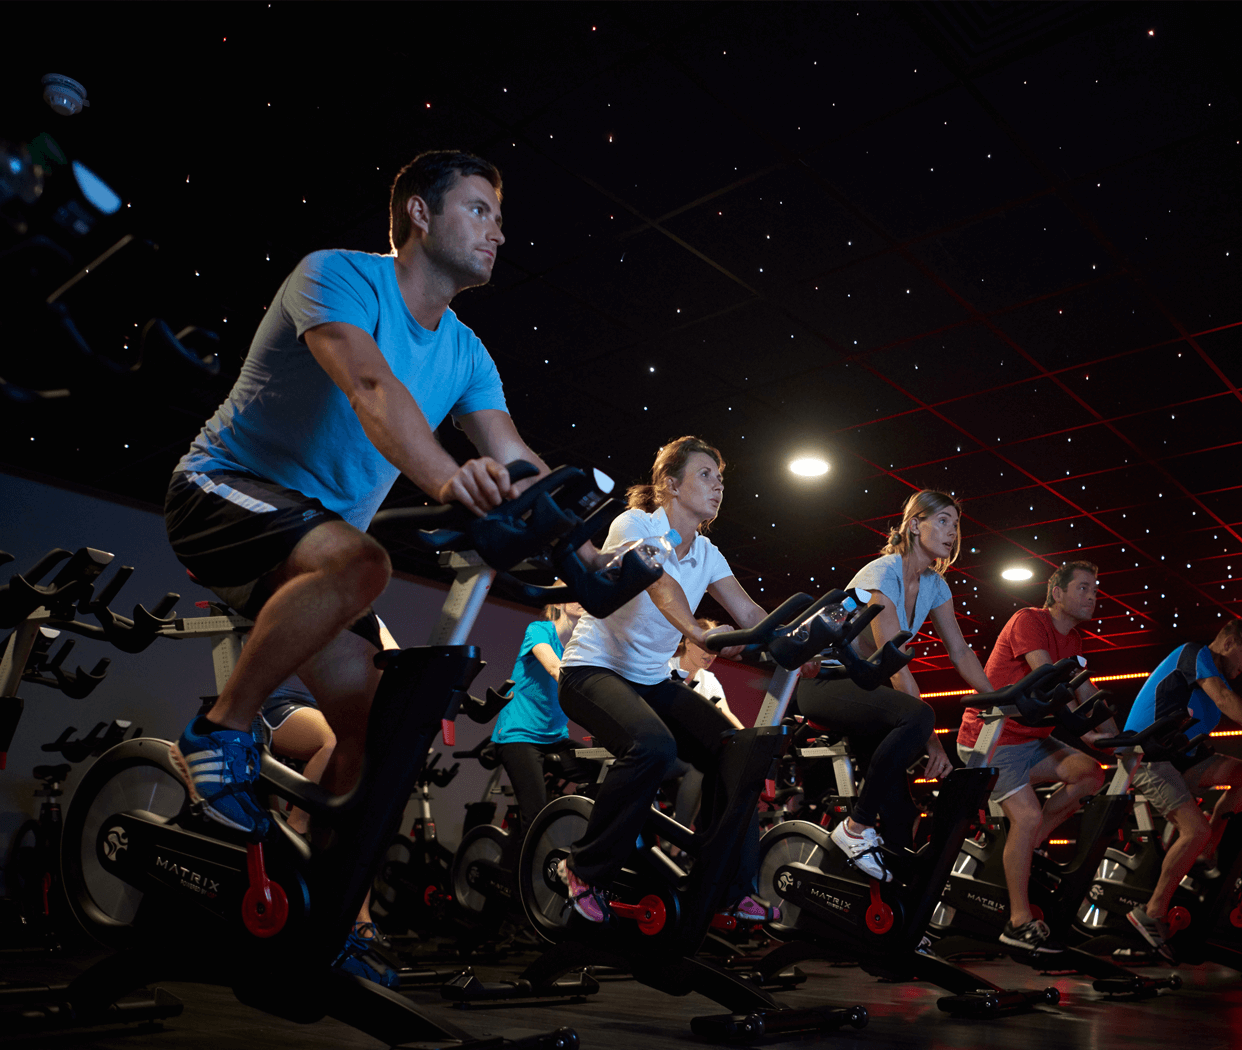 Sufferfest - The Downward Spiral - Virtual® Studio - Speed